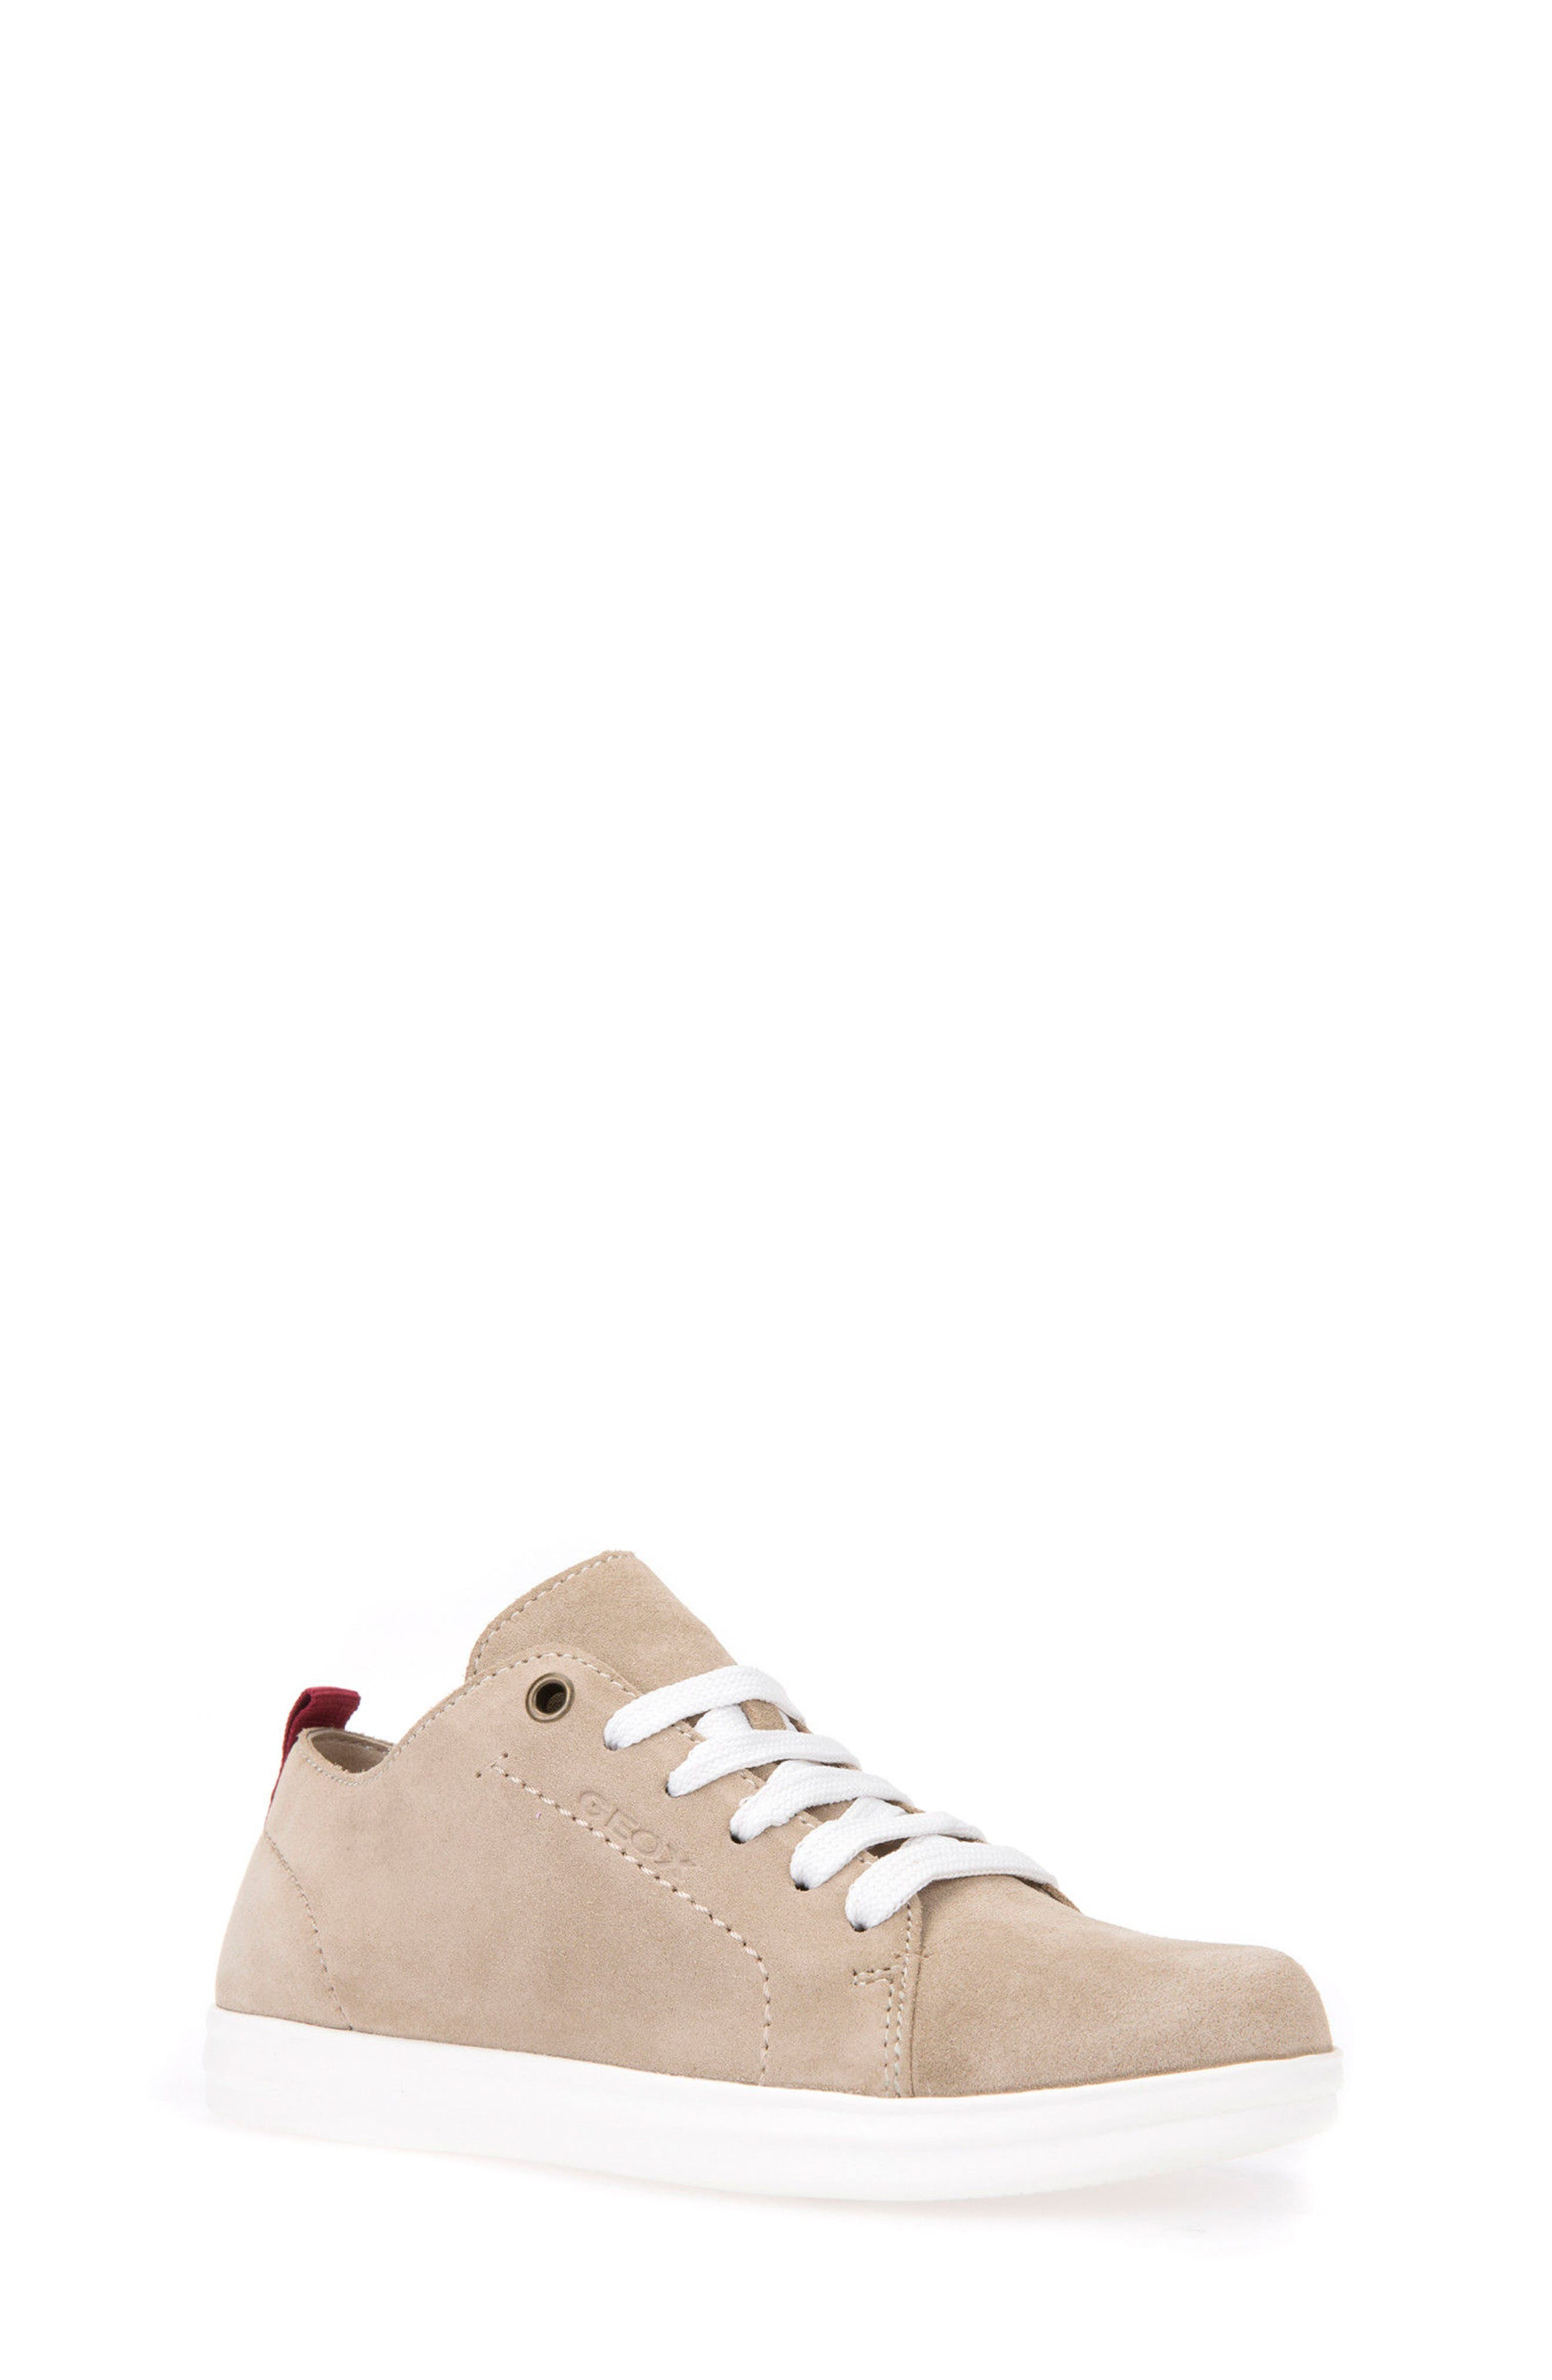 Anthor Low Top Sneaker,                             Main thumbnail 1, color,                             BEIGE